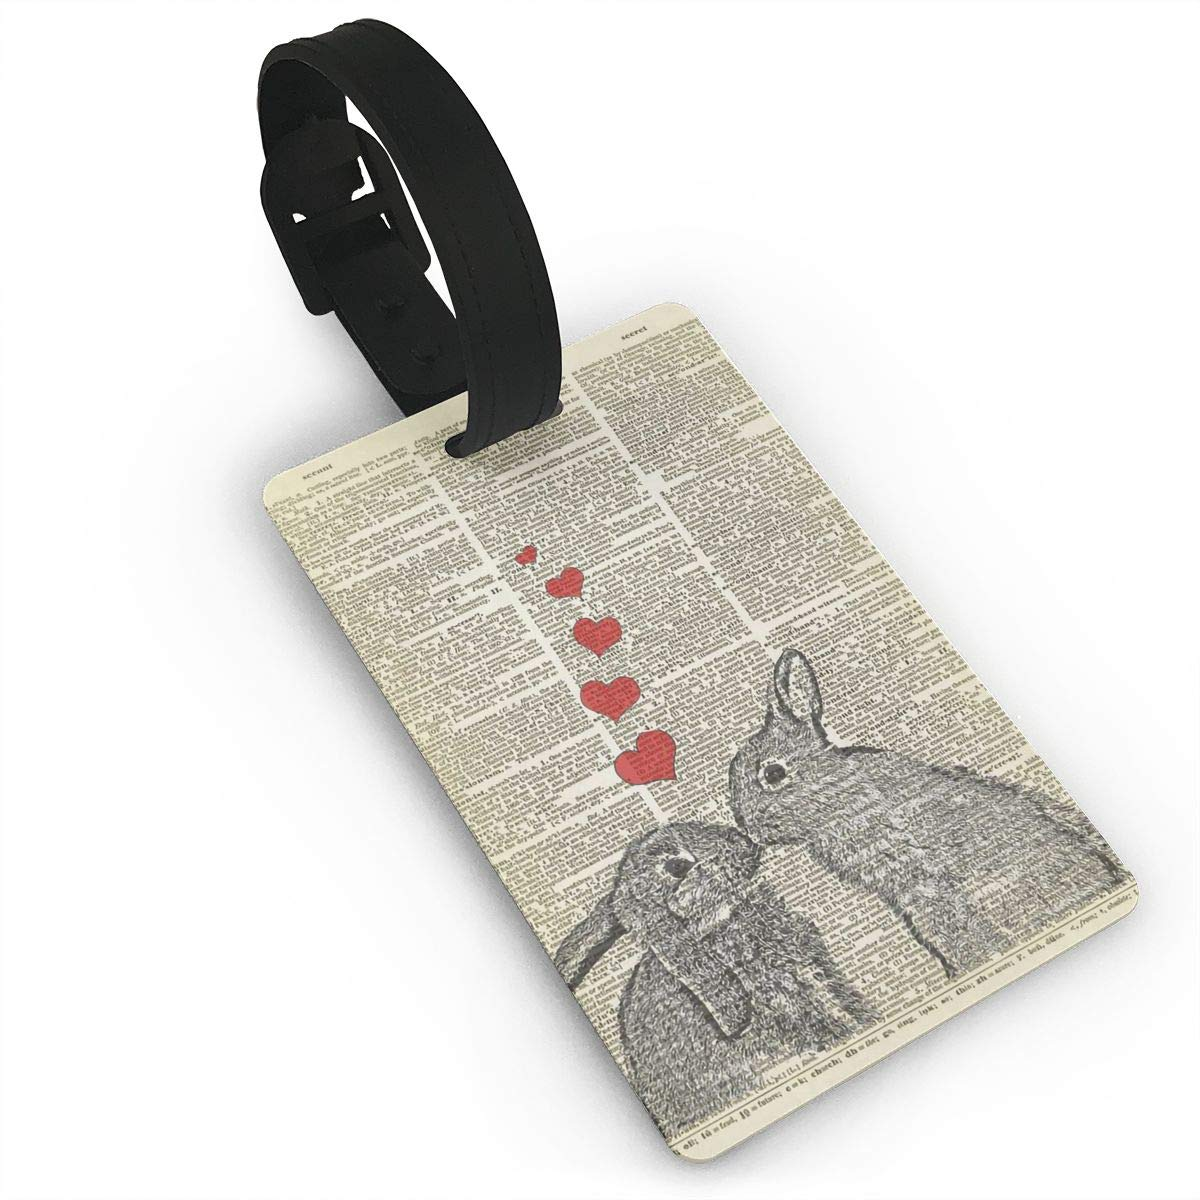 Two Bunnies In Love Cruise Luggage Tag For Travel Tags Accessories 2 Pack Luggage Tags